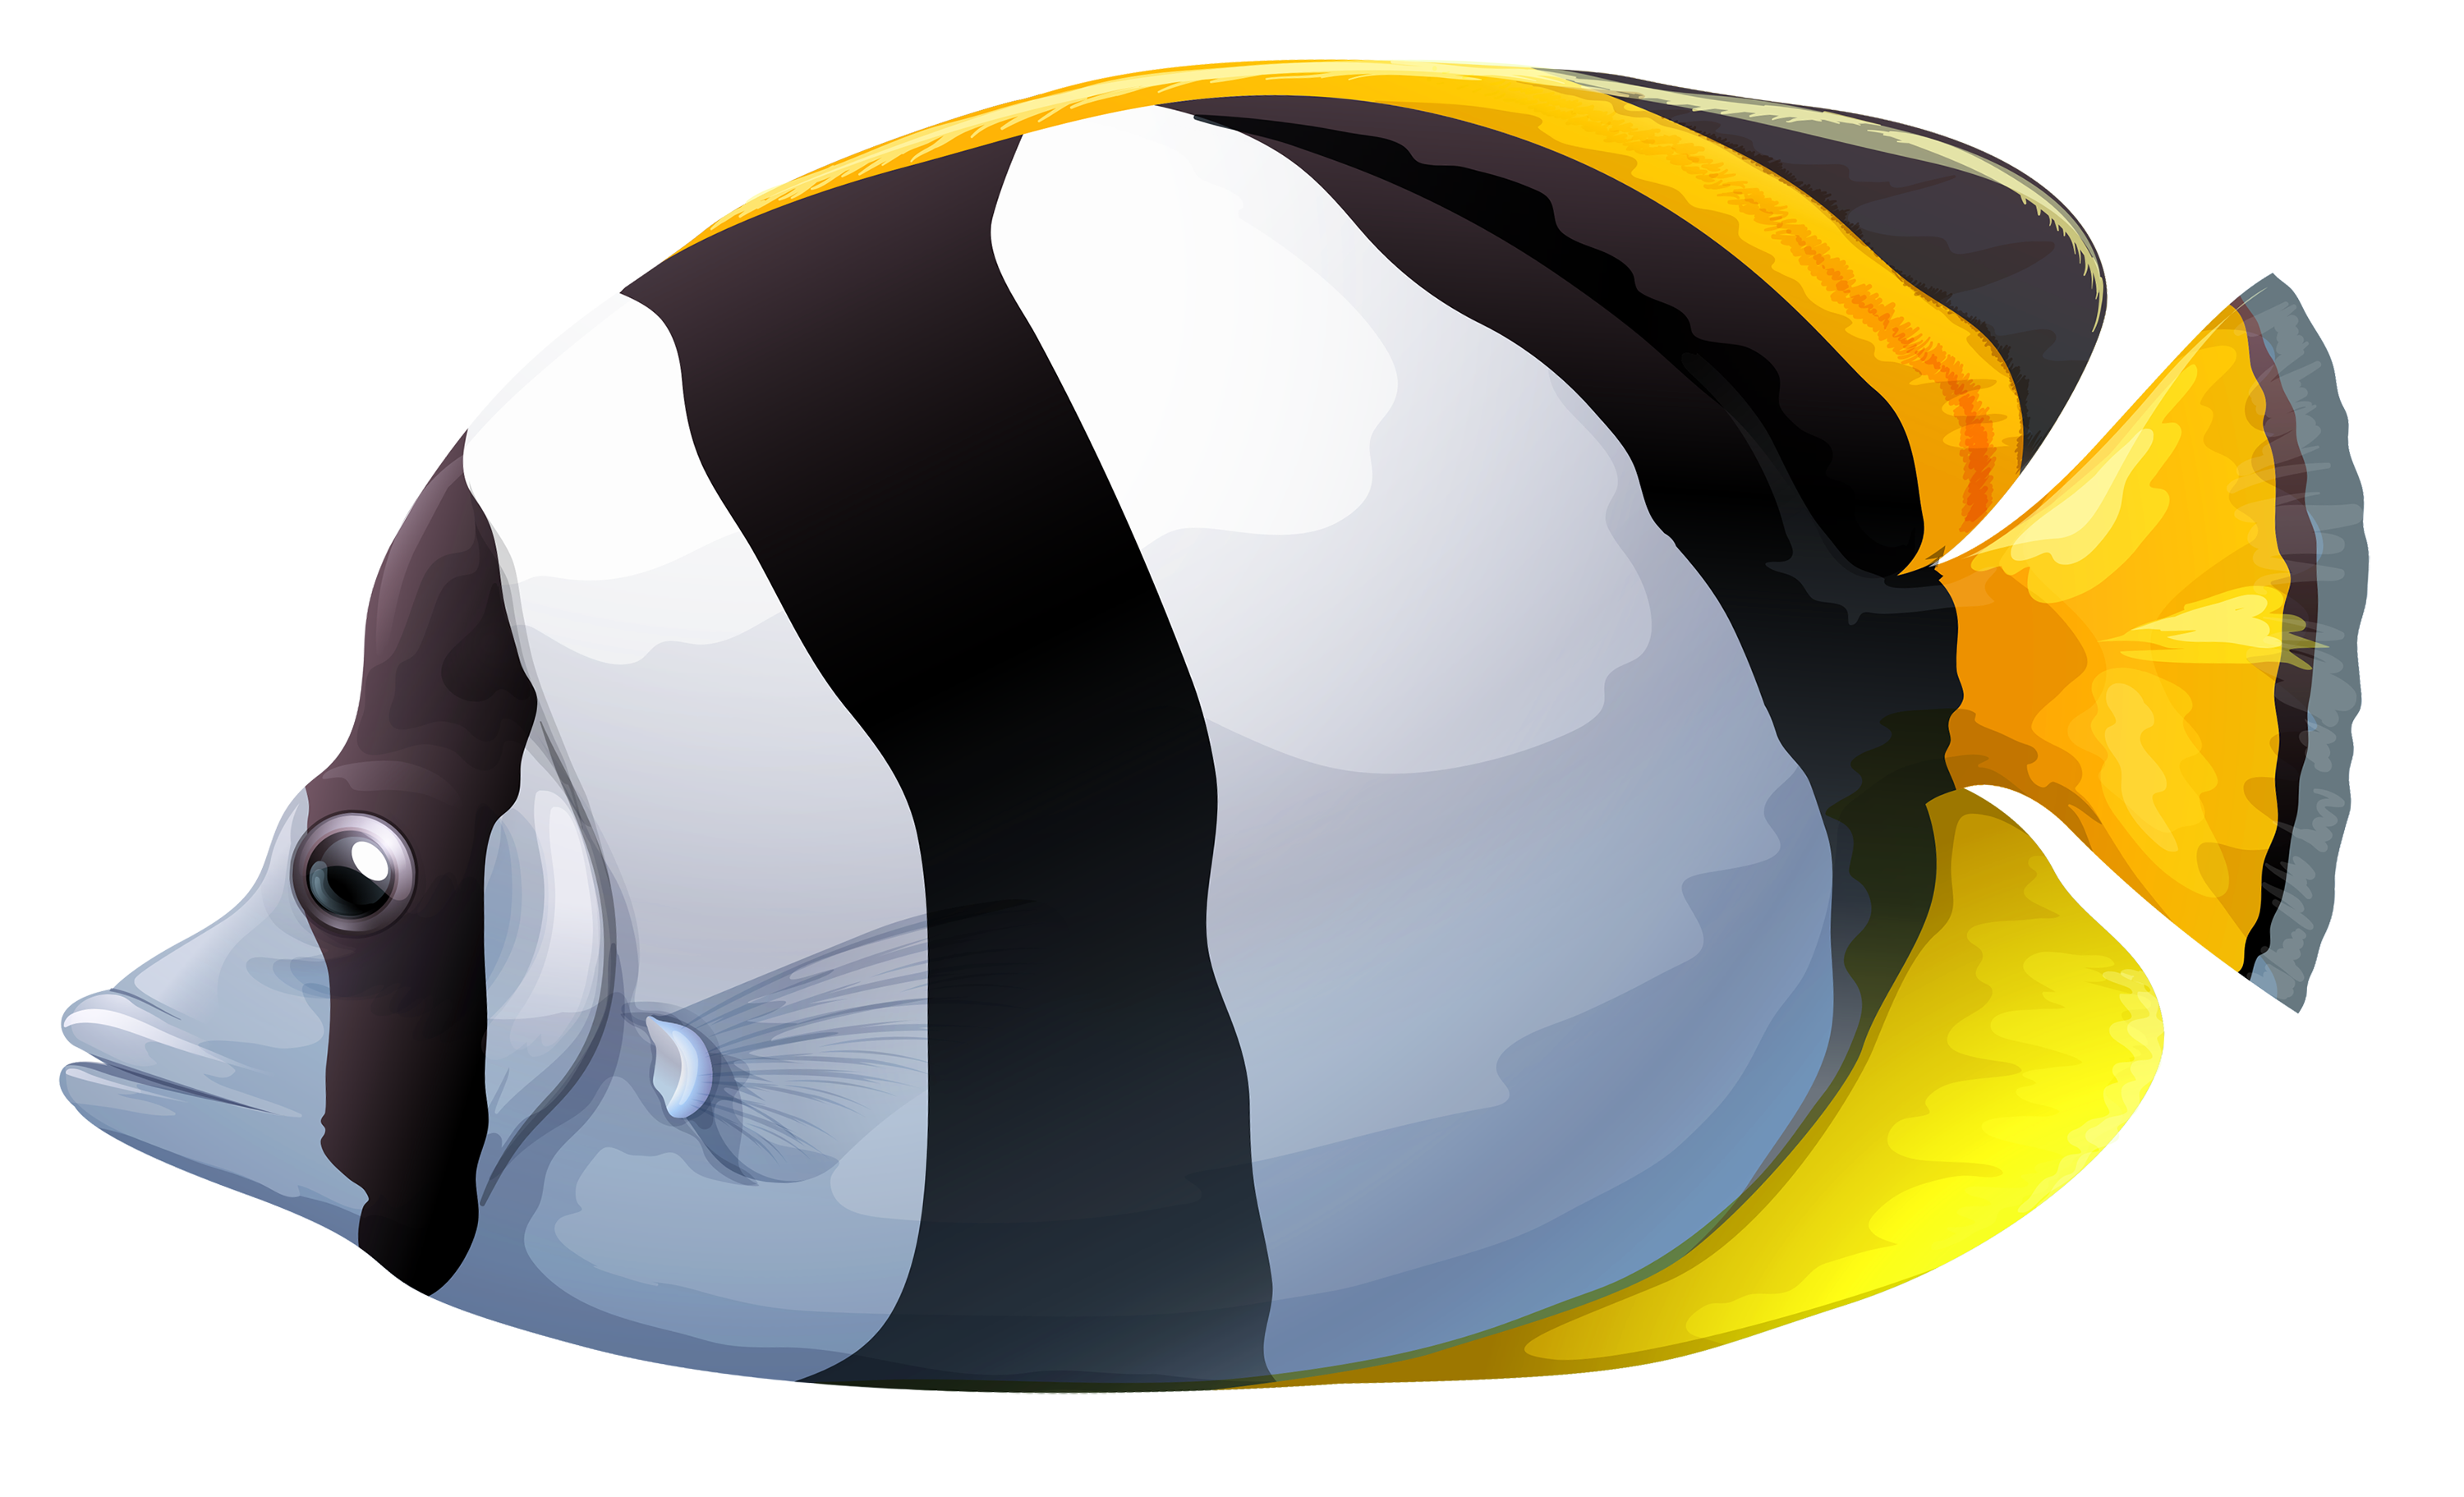 Butterflyfish clipart #4, Download drawings